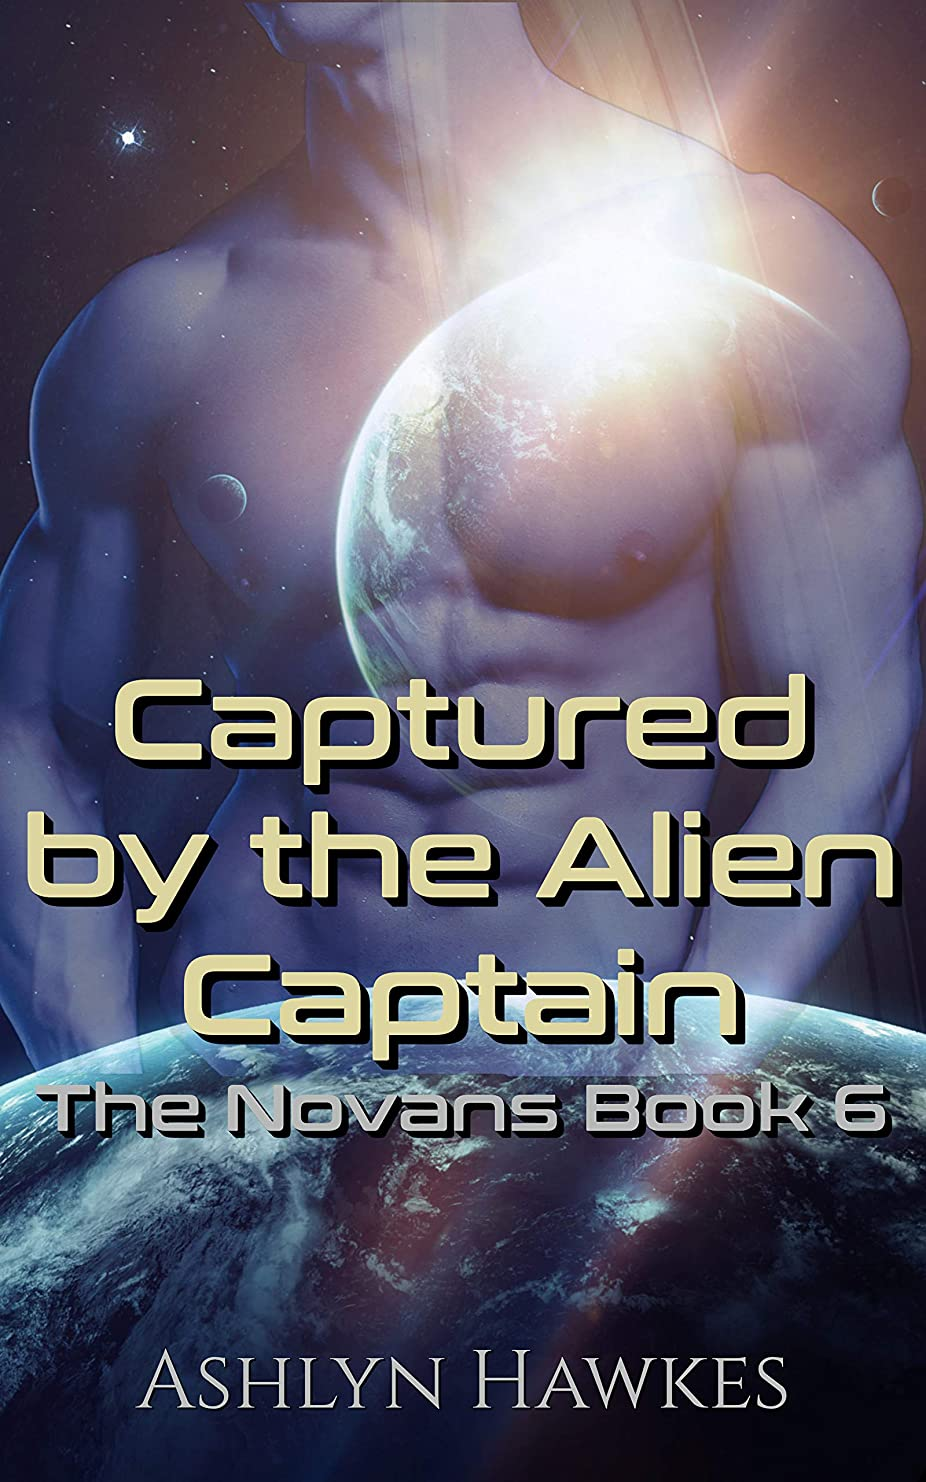 リラックス推定むしゃむしゃCaptured by the Alien Captain: An Alien Abduction Romance (The Novans Book 6) (English Edition)